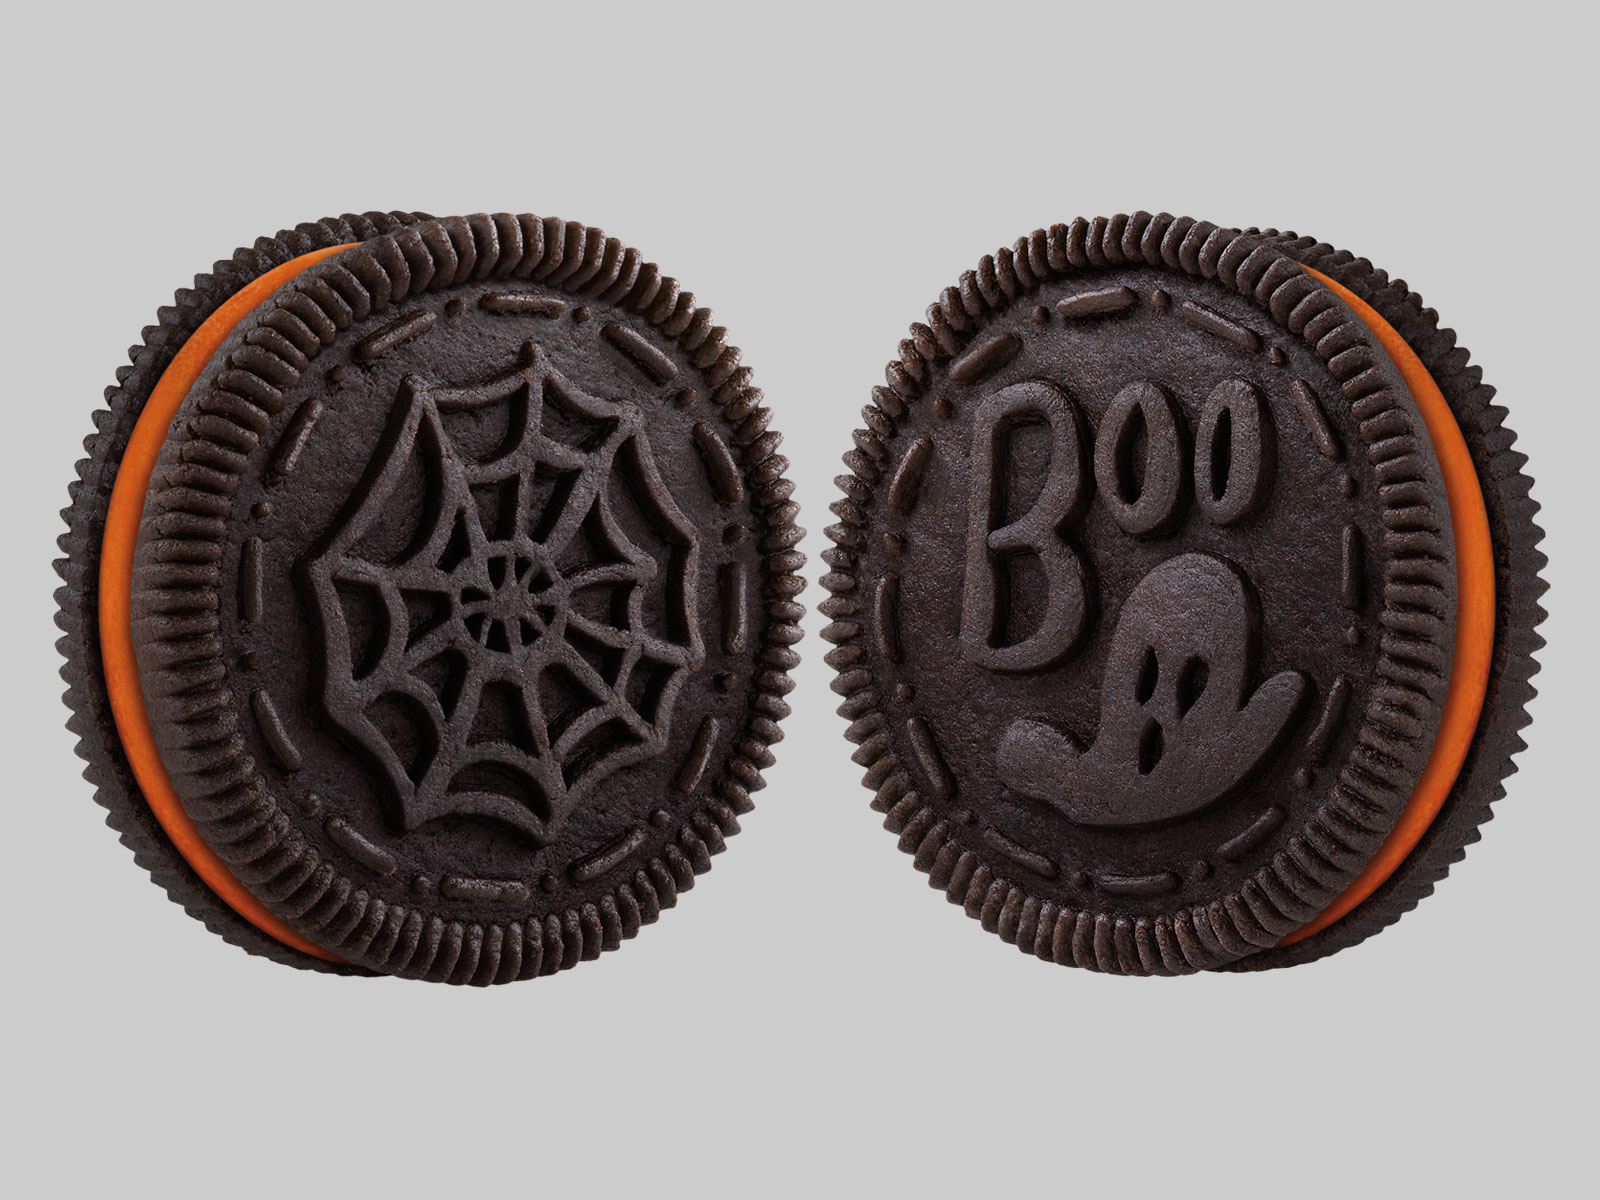 oreo-boo-FT-BLOG0819.jpg